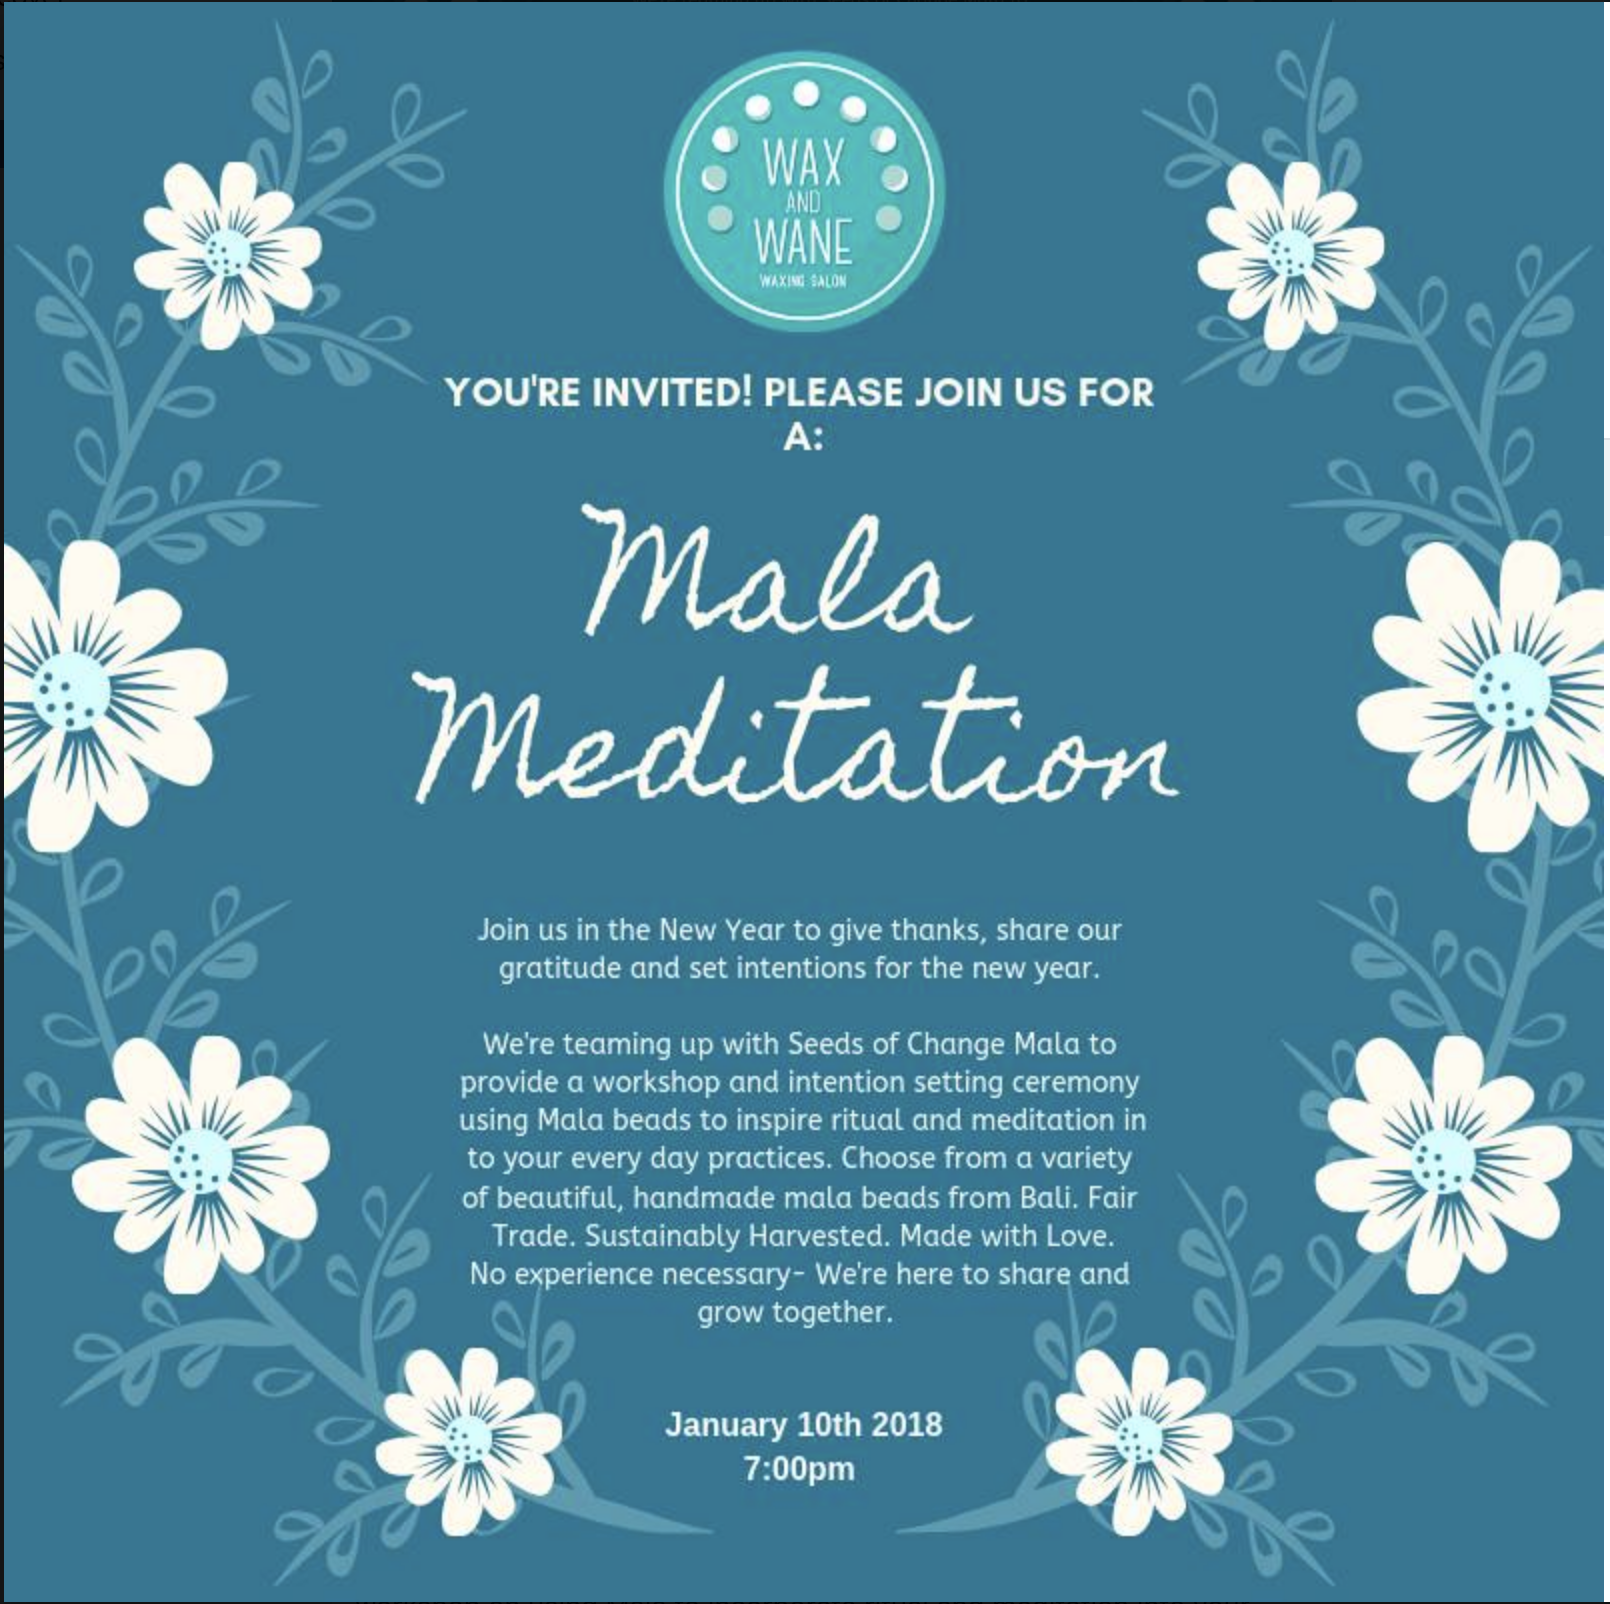 Screen-Shot-2019-01-05-at-8.46.10-AM Mala Meditation @ Savannah Wax and Wane